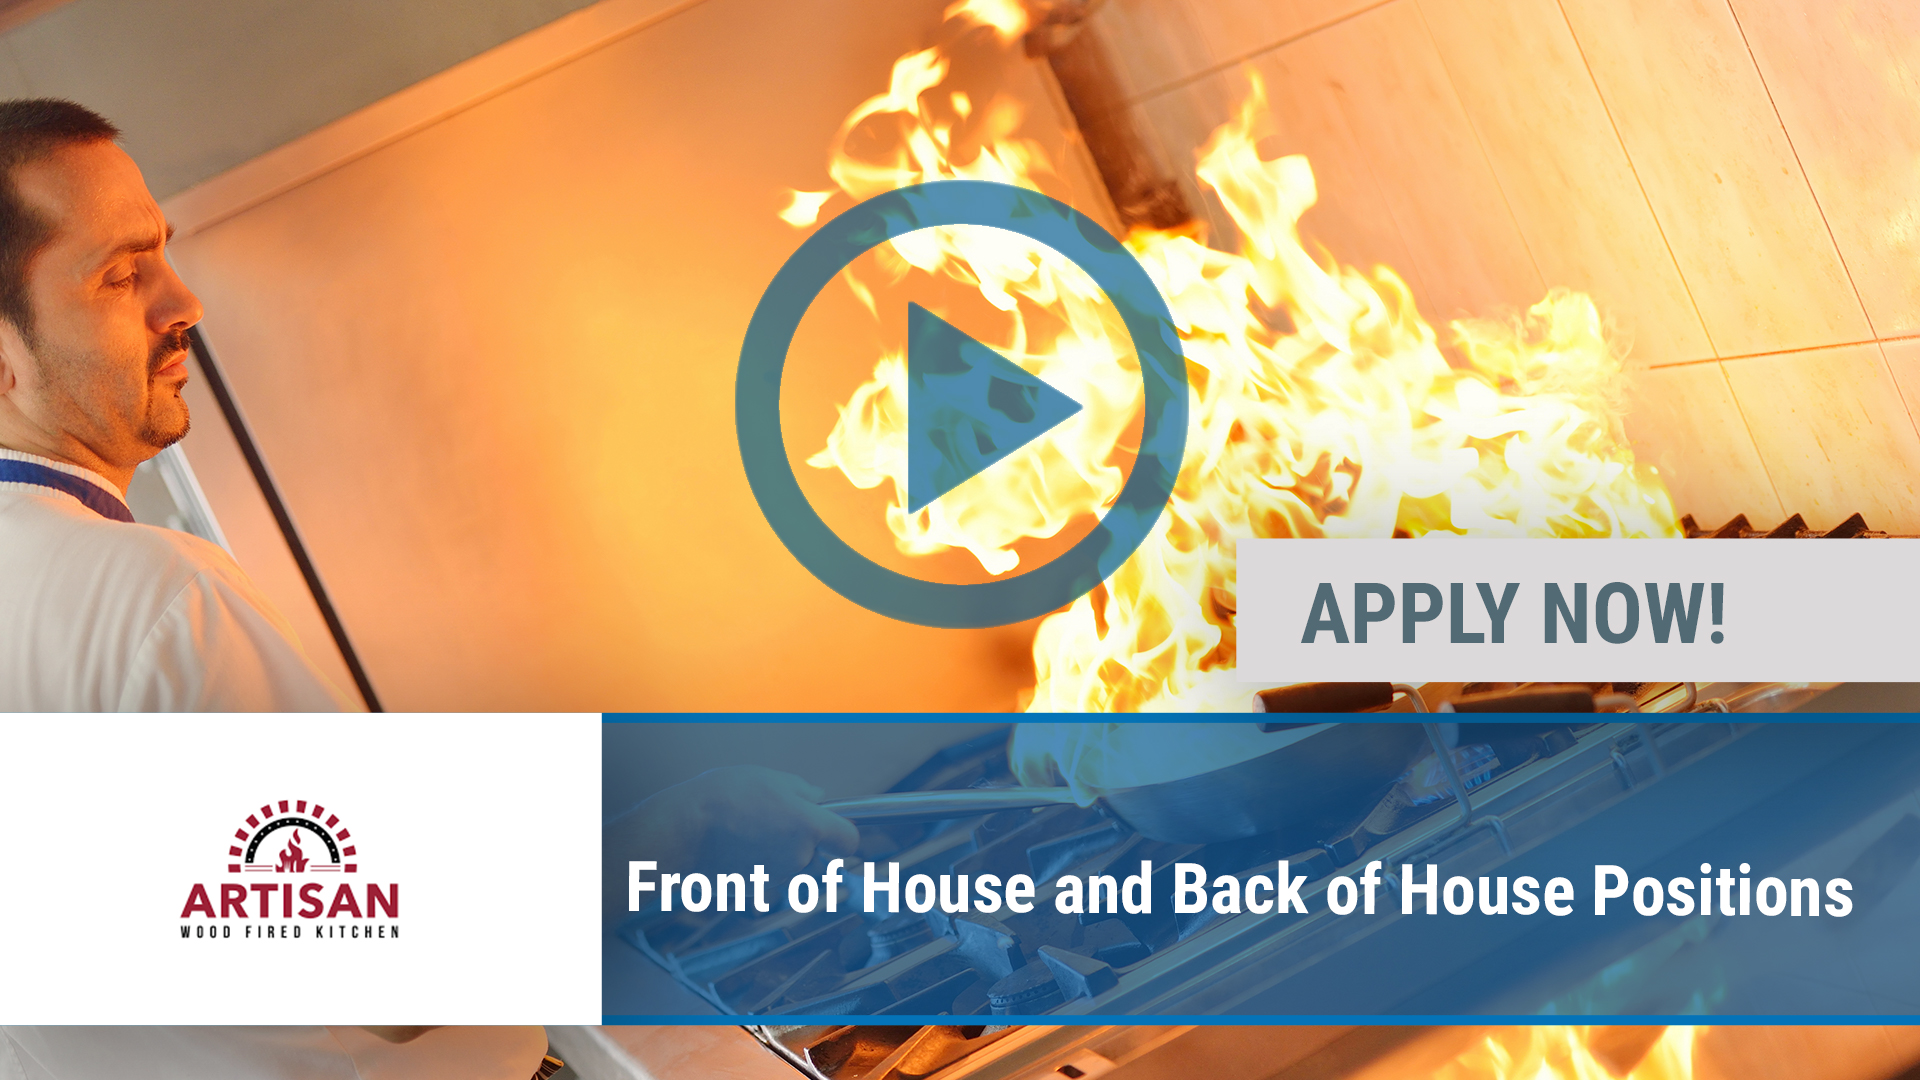 Watch our careers video for available job opening Front of House and Back of House Positions in Rogers, AR